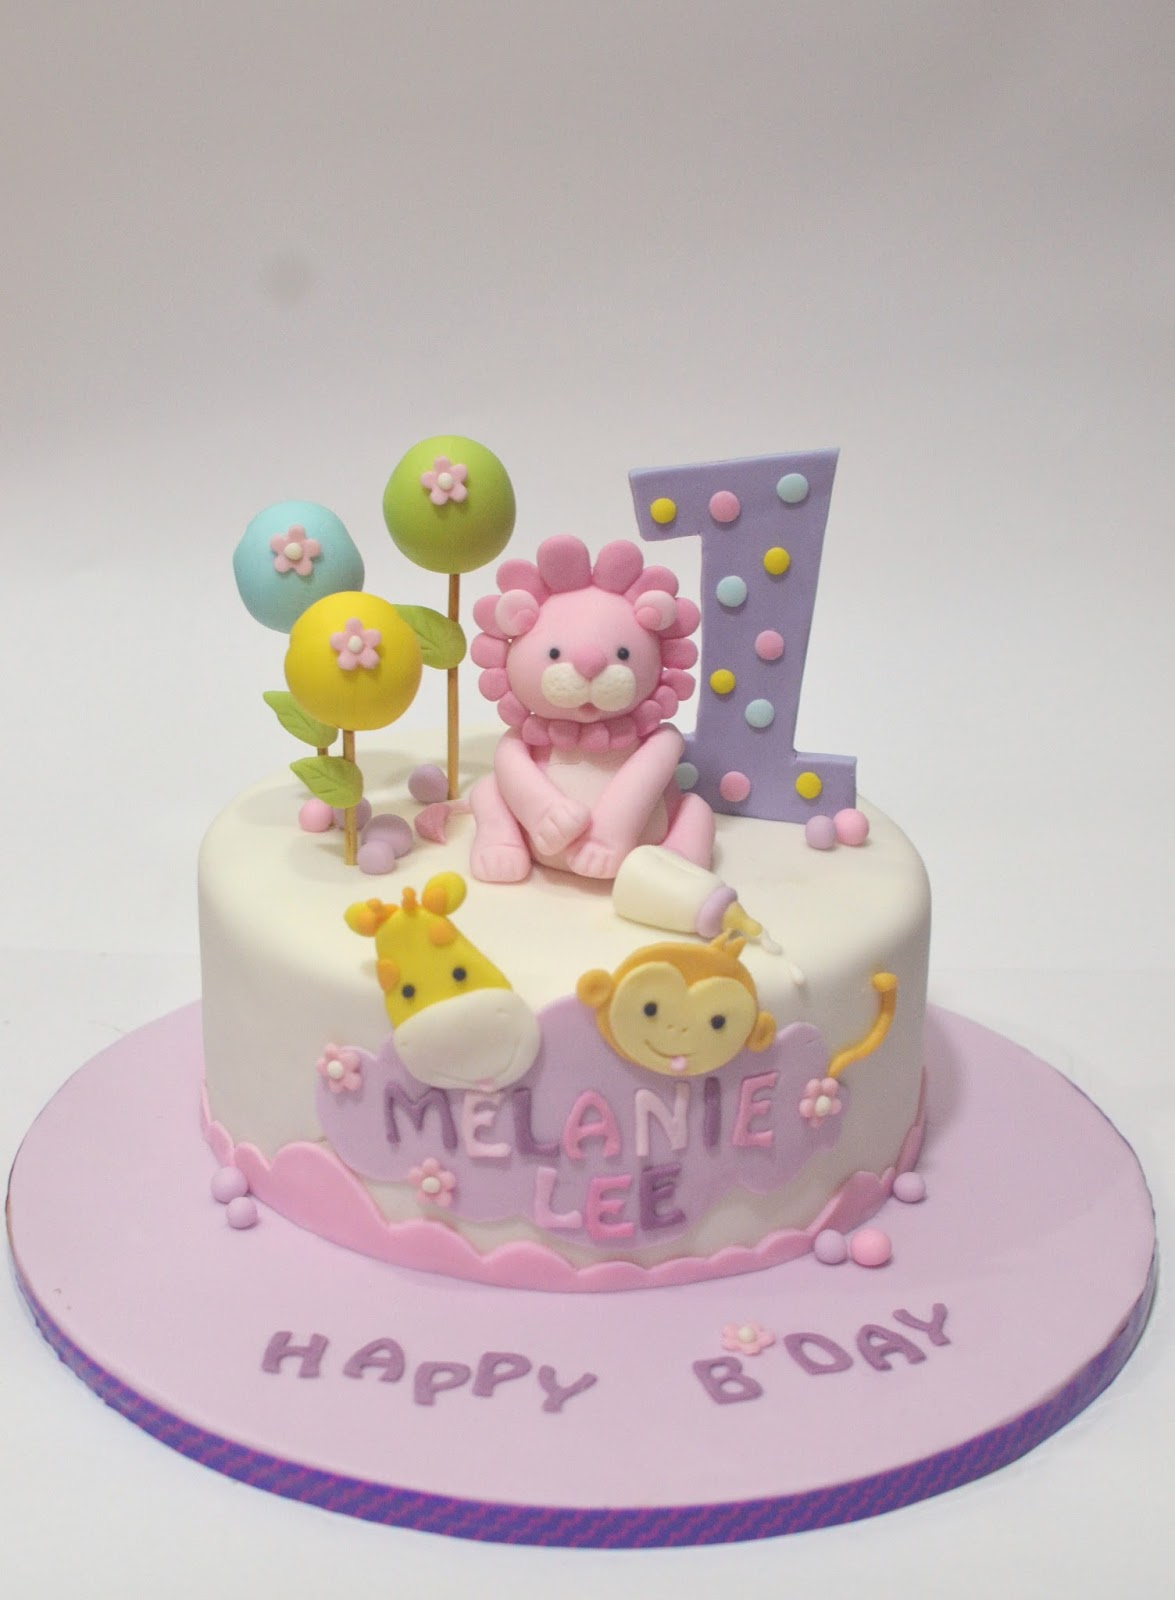 Birthday Cake Ideas One Year Old : Mom And Daughter Cakes: Cute Safari Animals Cake For One ...